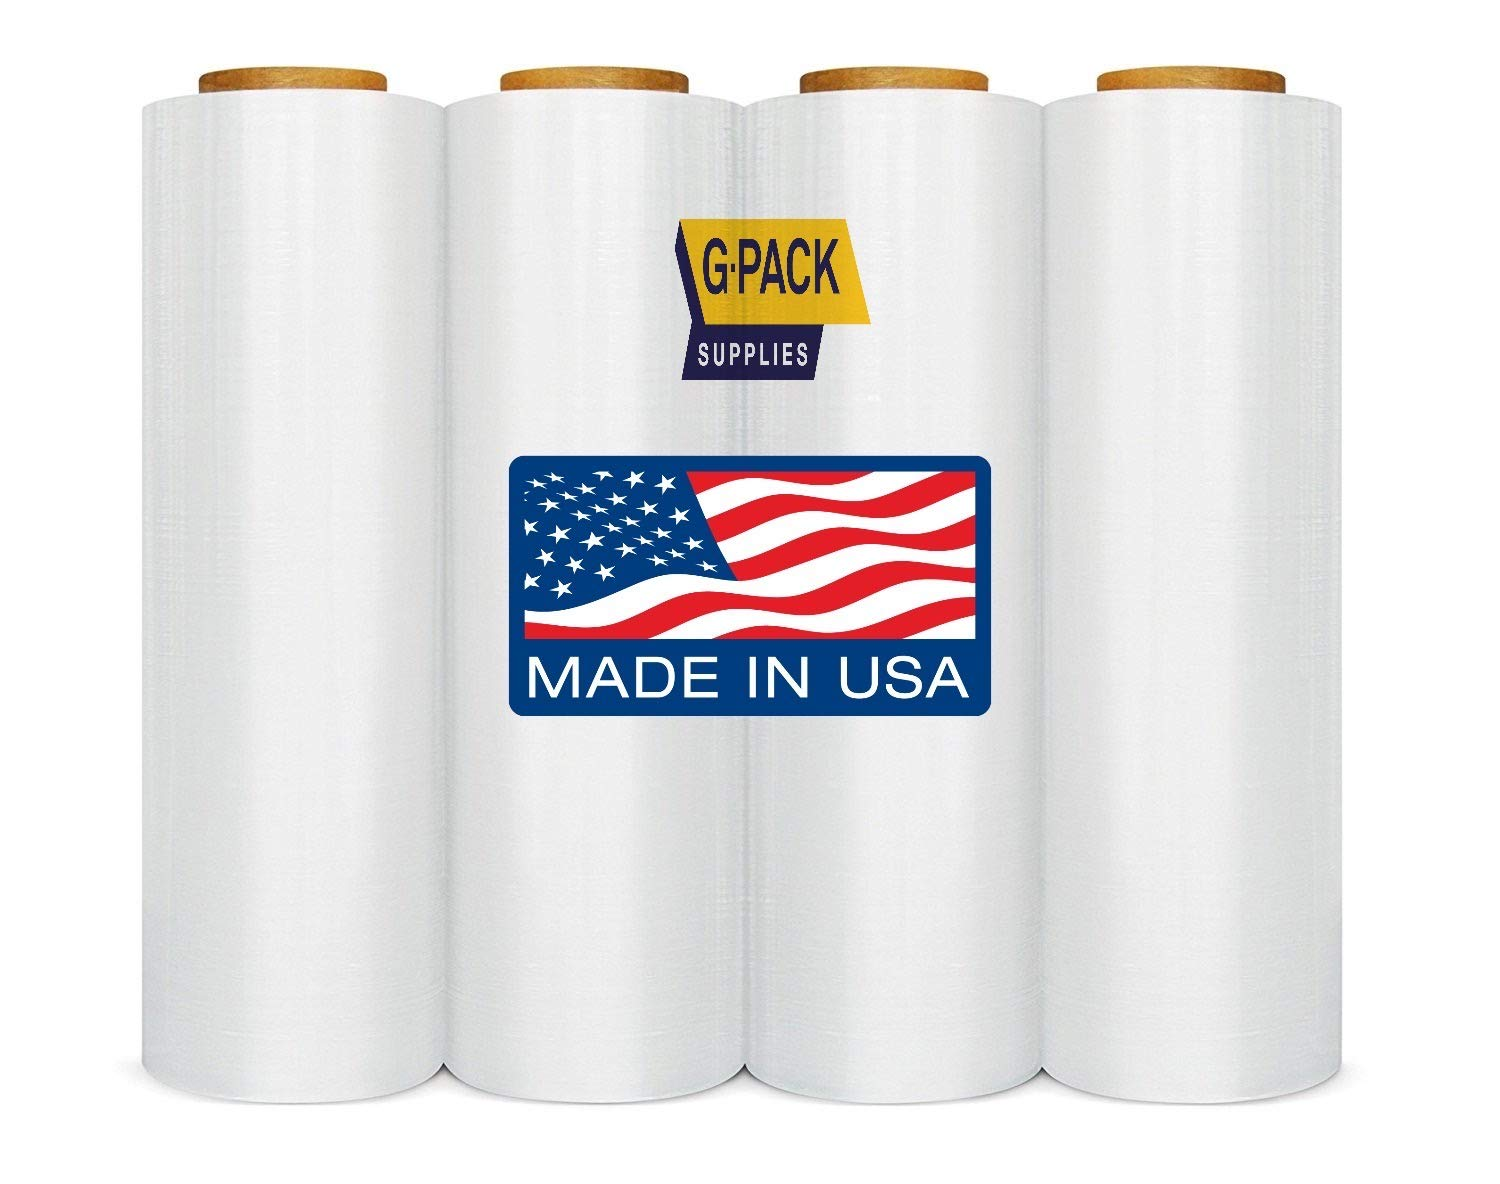 G-Pack Stretch Film 18 in x 1000 Feet Industrial Strength Shrink Wrap Ideal for Packaging, Shipping, Pallet, Hand Clear Plastic Wrap for Furniture, Moving, Boxes 21 Micron, 04 Rolls by G-Pack